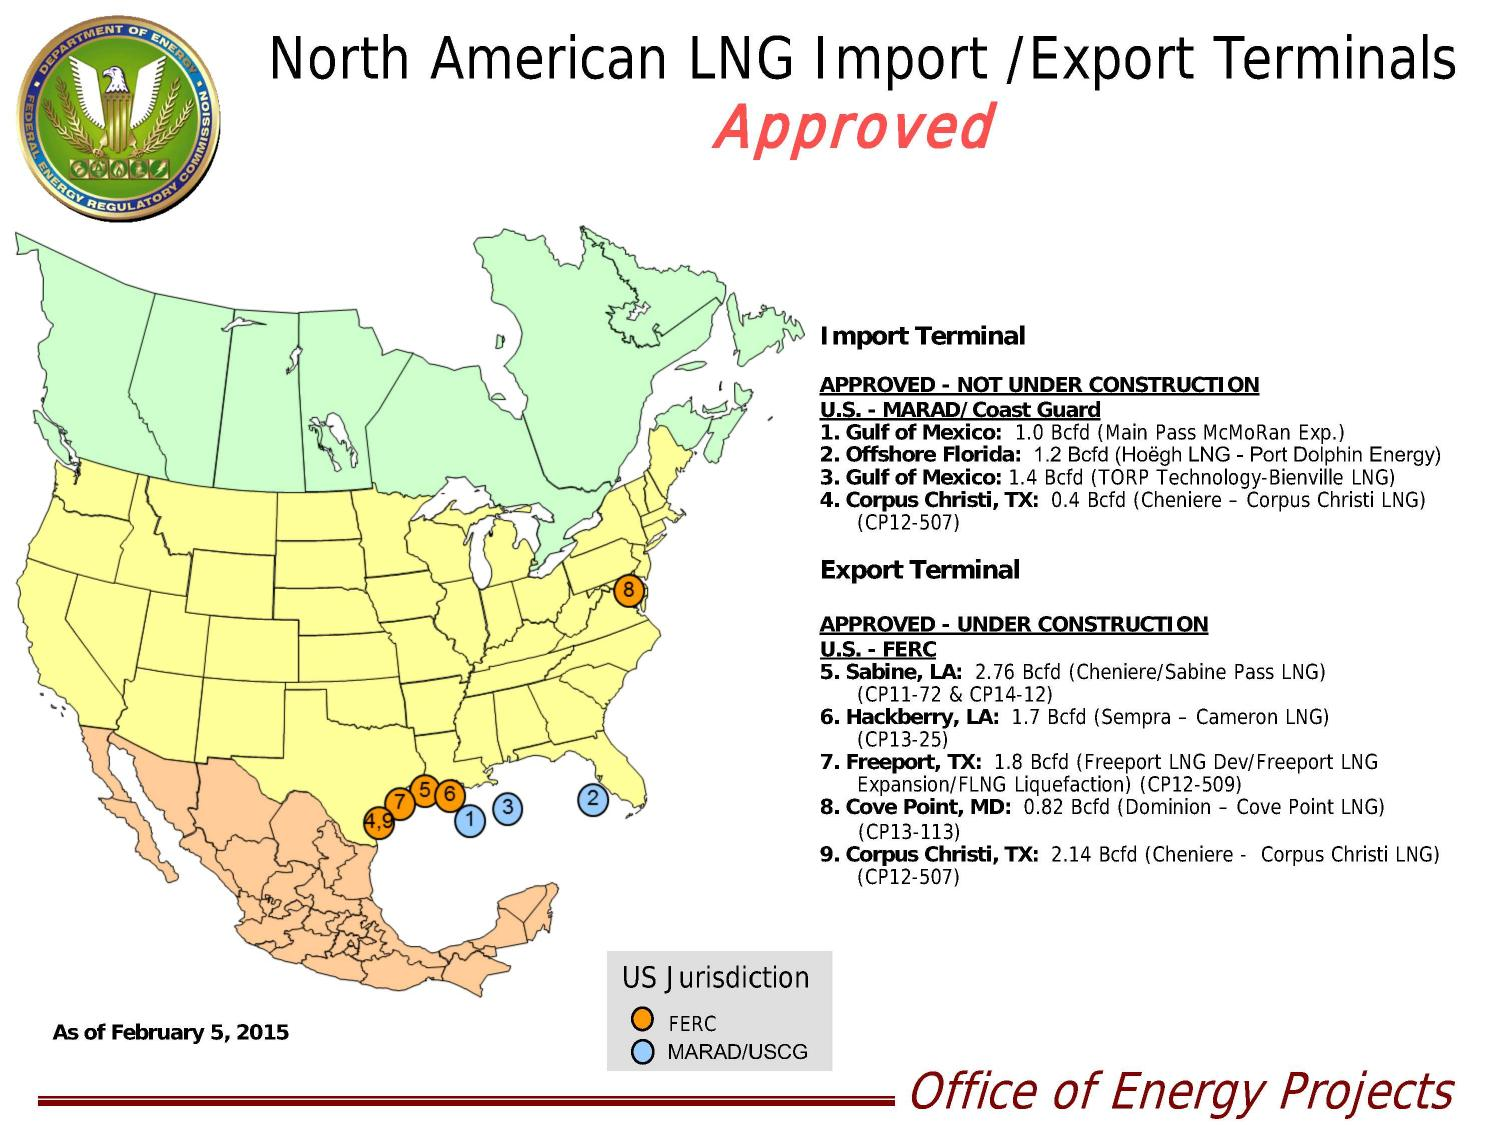 1500x1125 FERC Approved LNG Export and Import, in LNG, by John S. Quarterman, for SpectraBusters.org, 22 February 2015